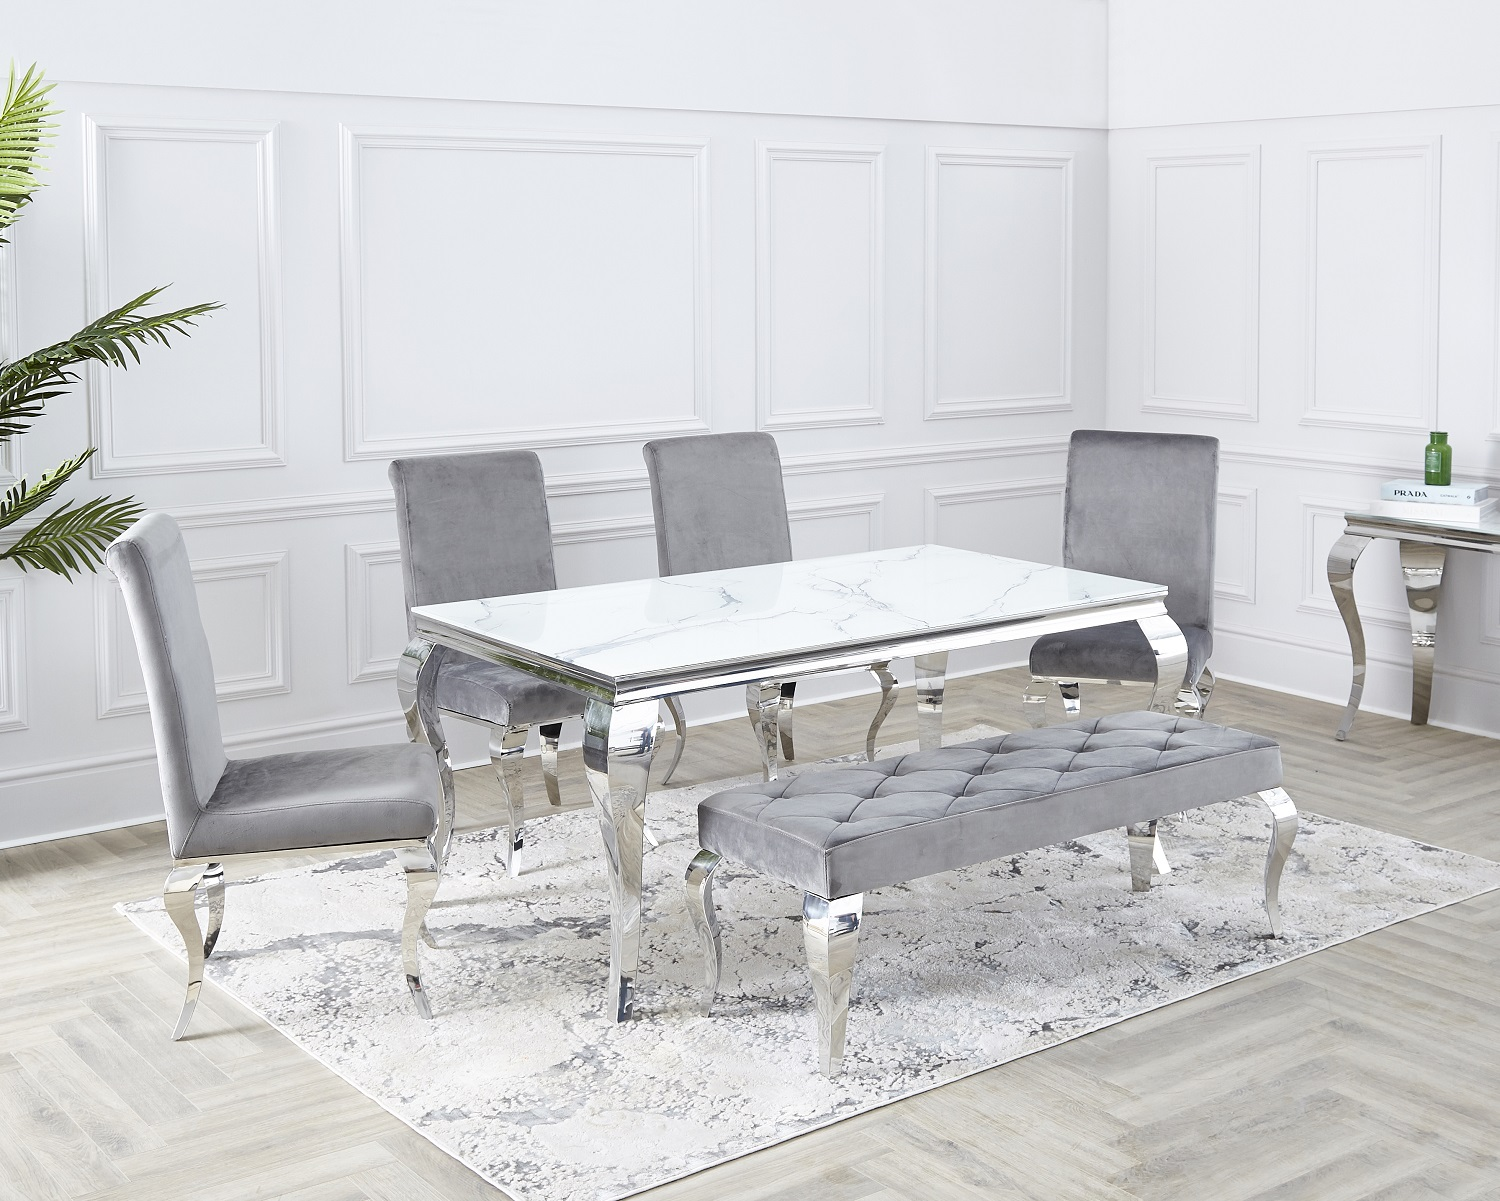 Louis 1 6m Dining Room Table Chairs, Grey And White Dining Room Table With Bench